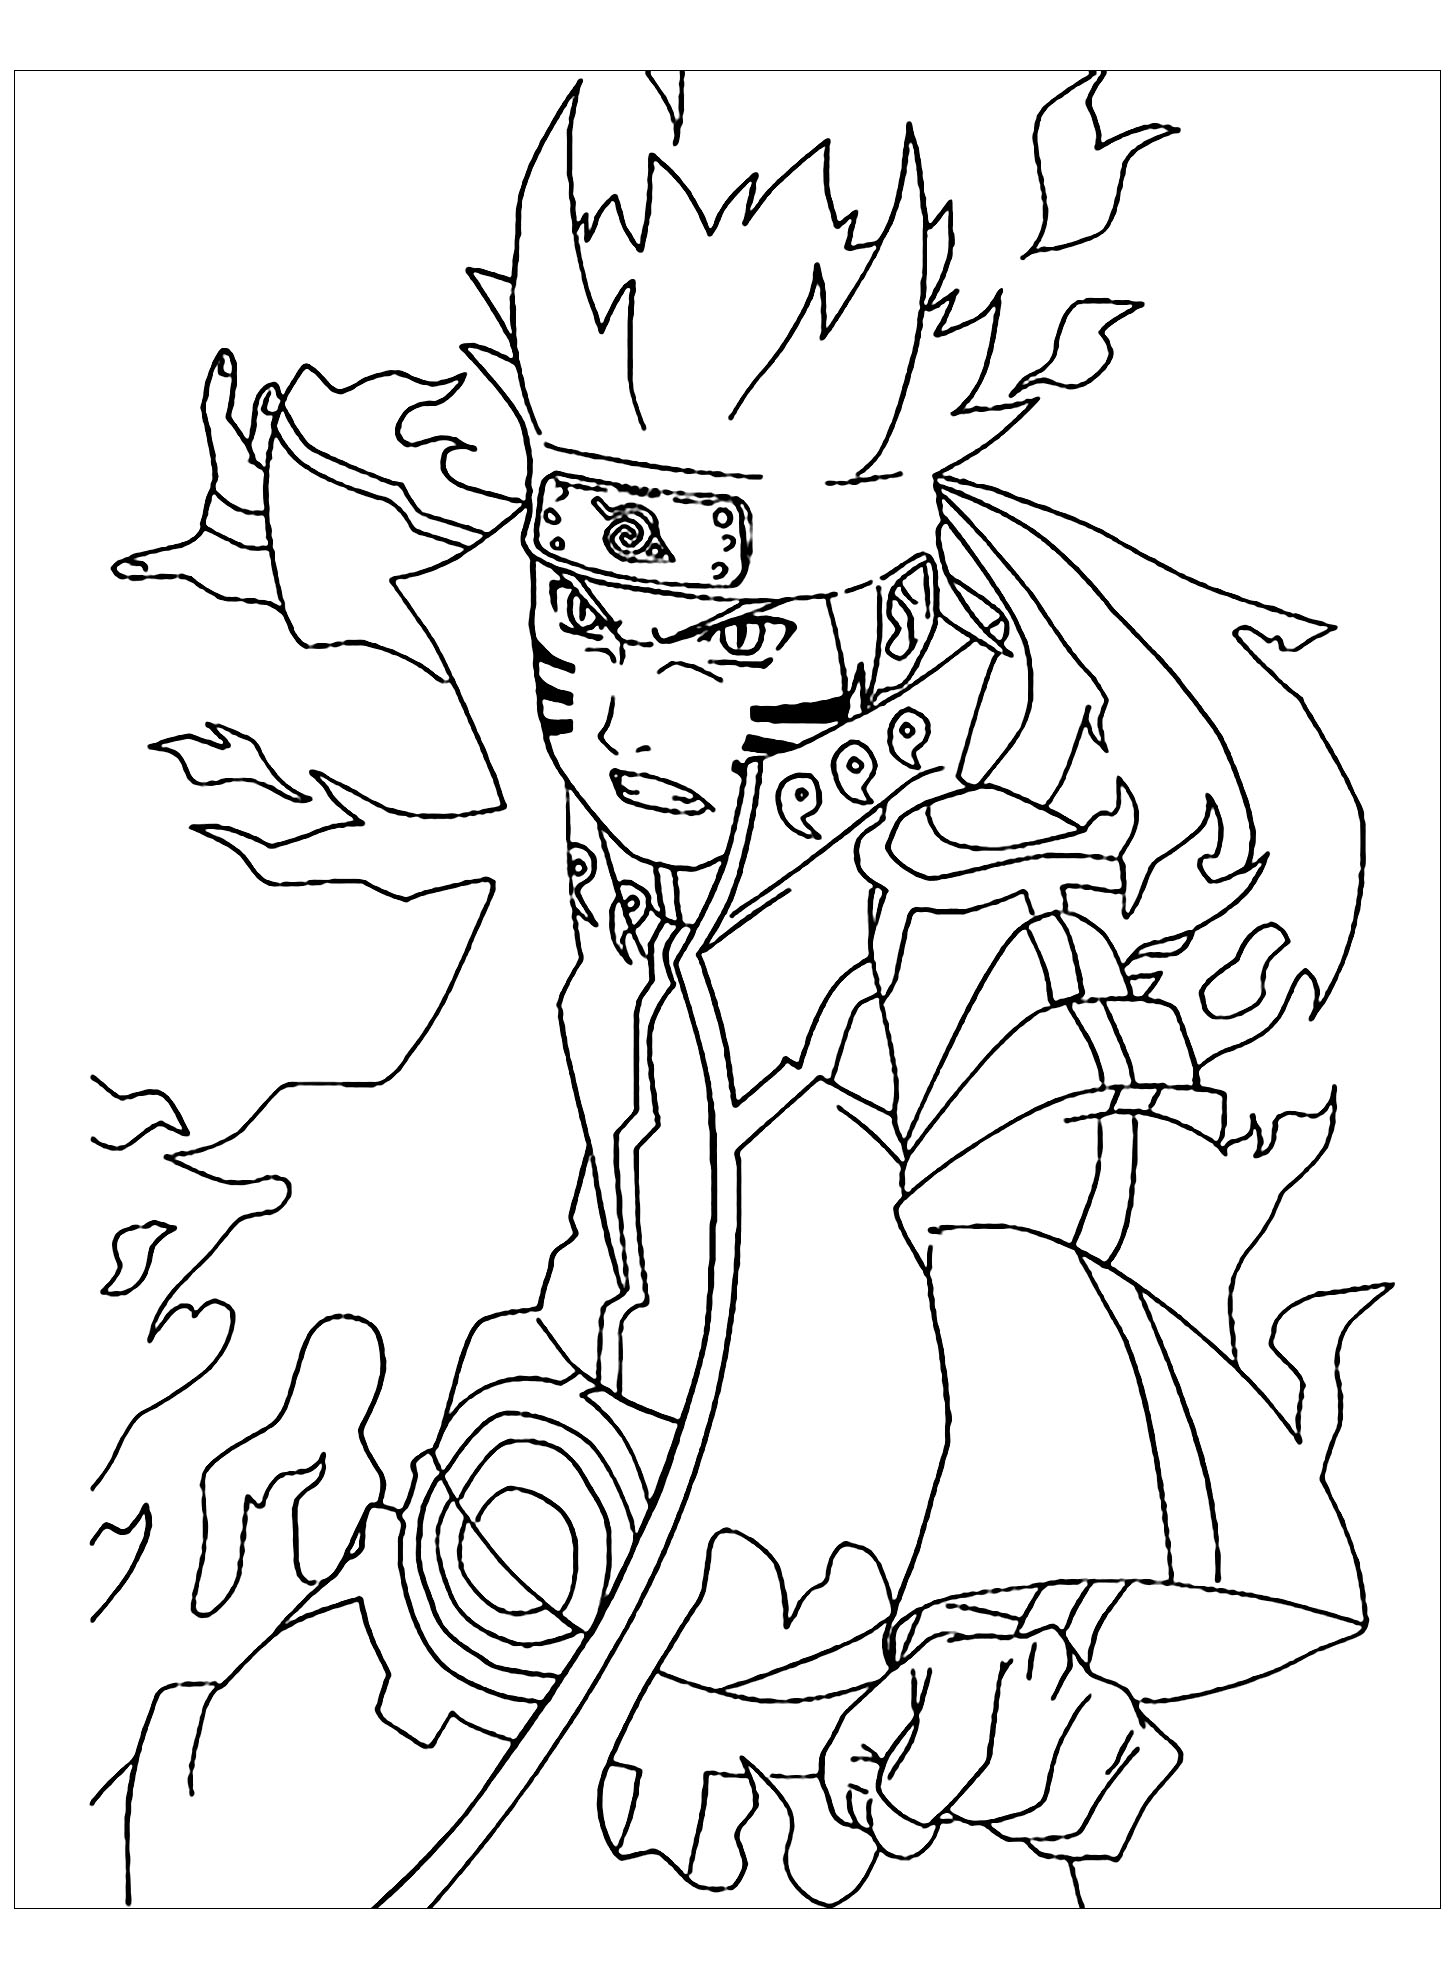 Naruto coloring sheets